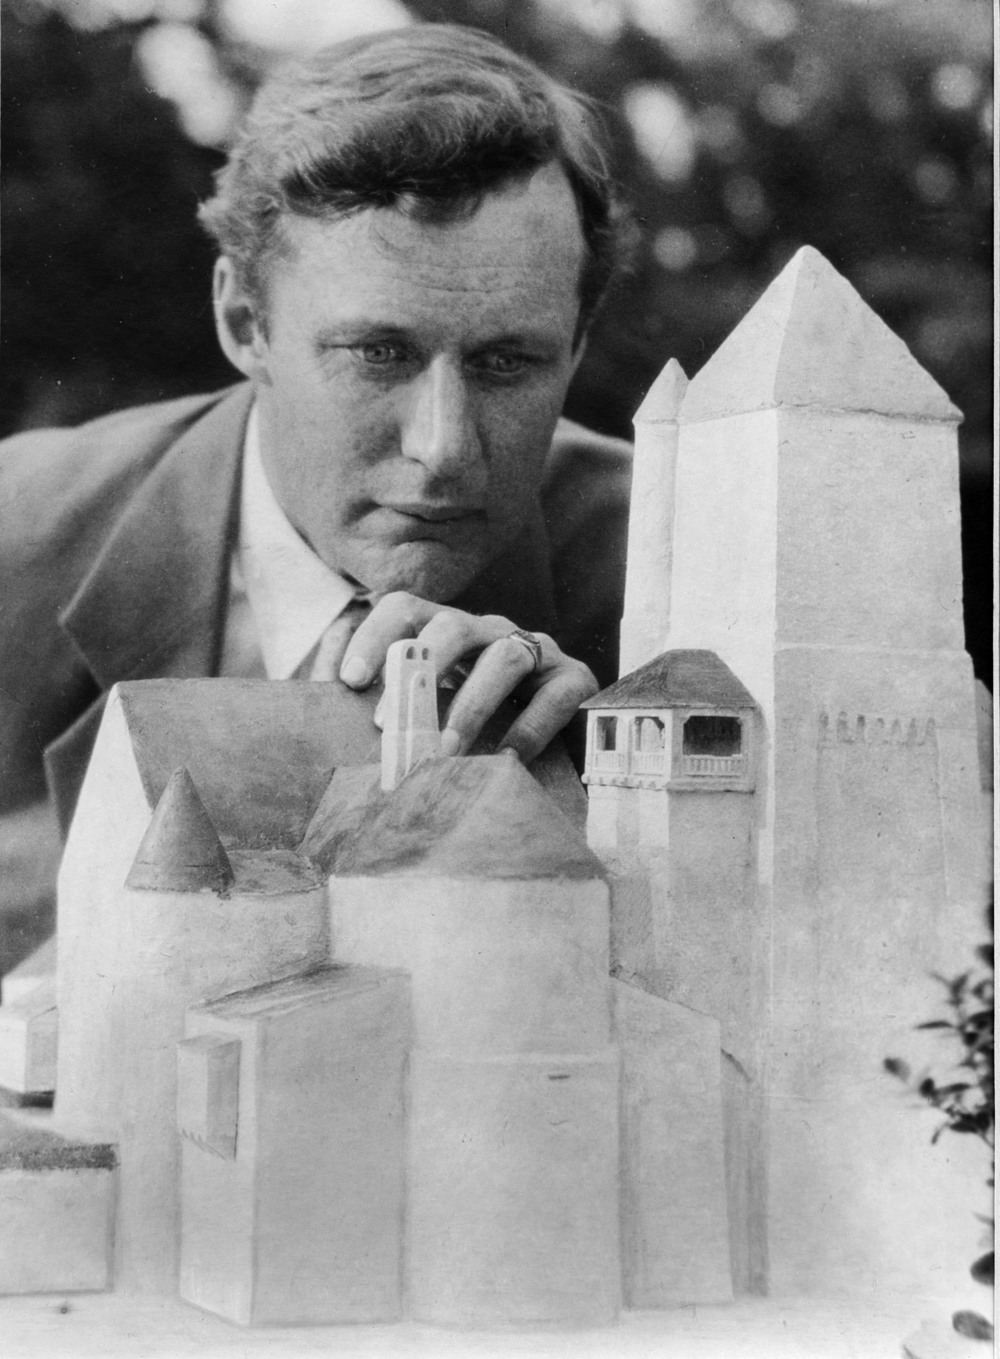 Figure 3: Raymond Pitcairn with an architectural model of Glencairn.